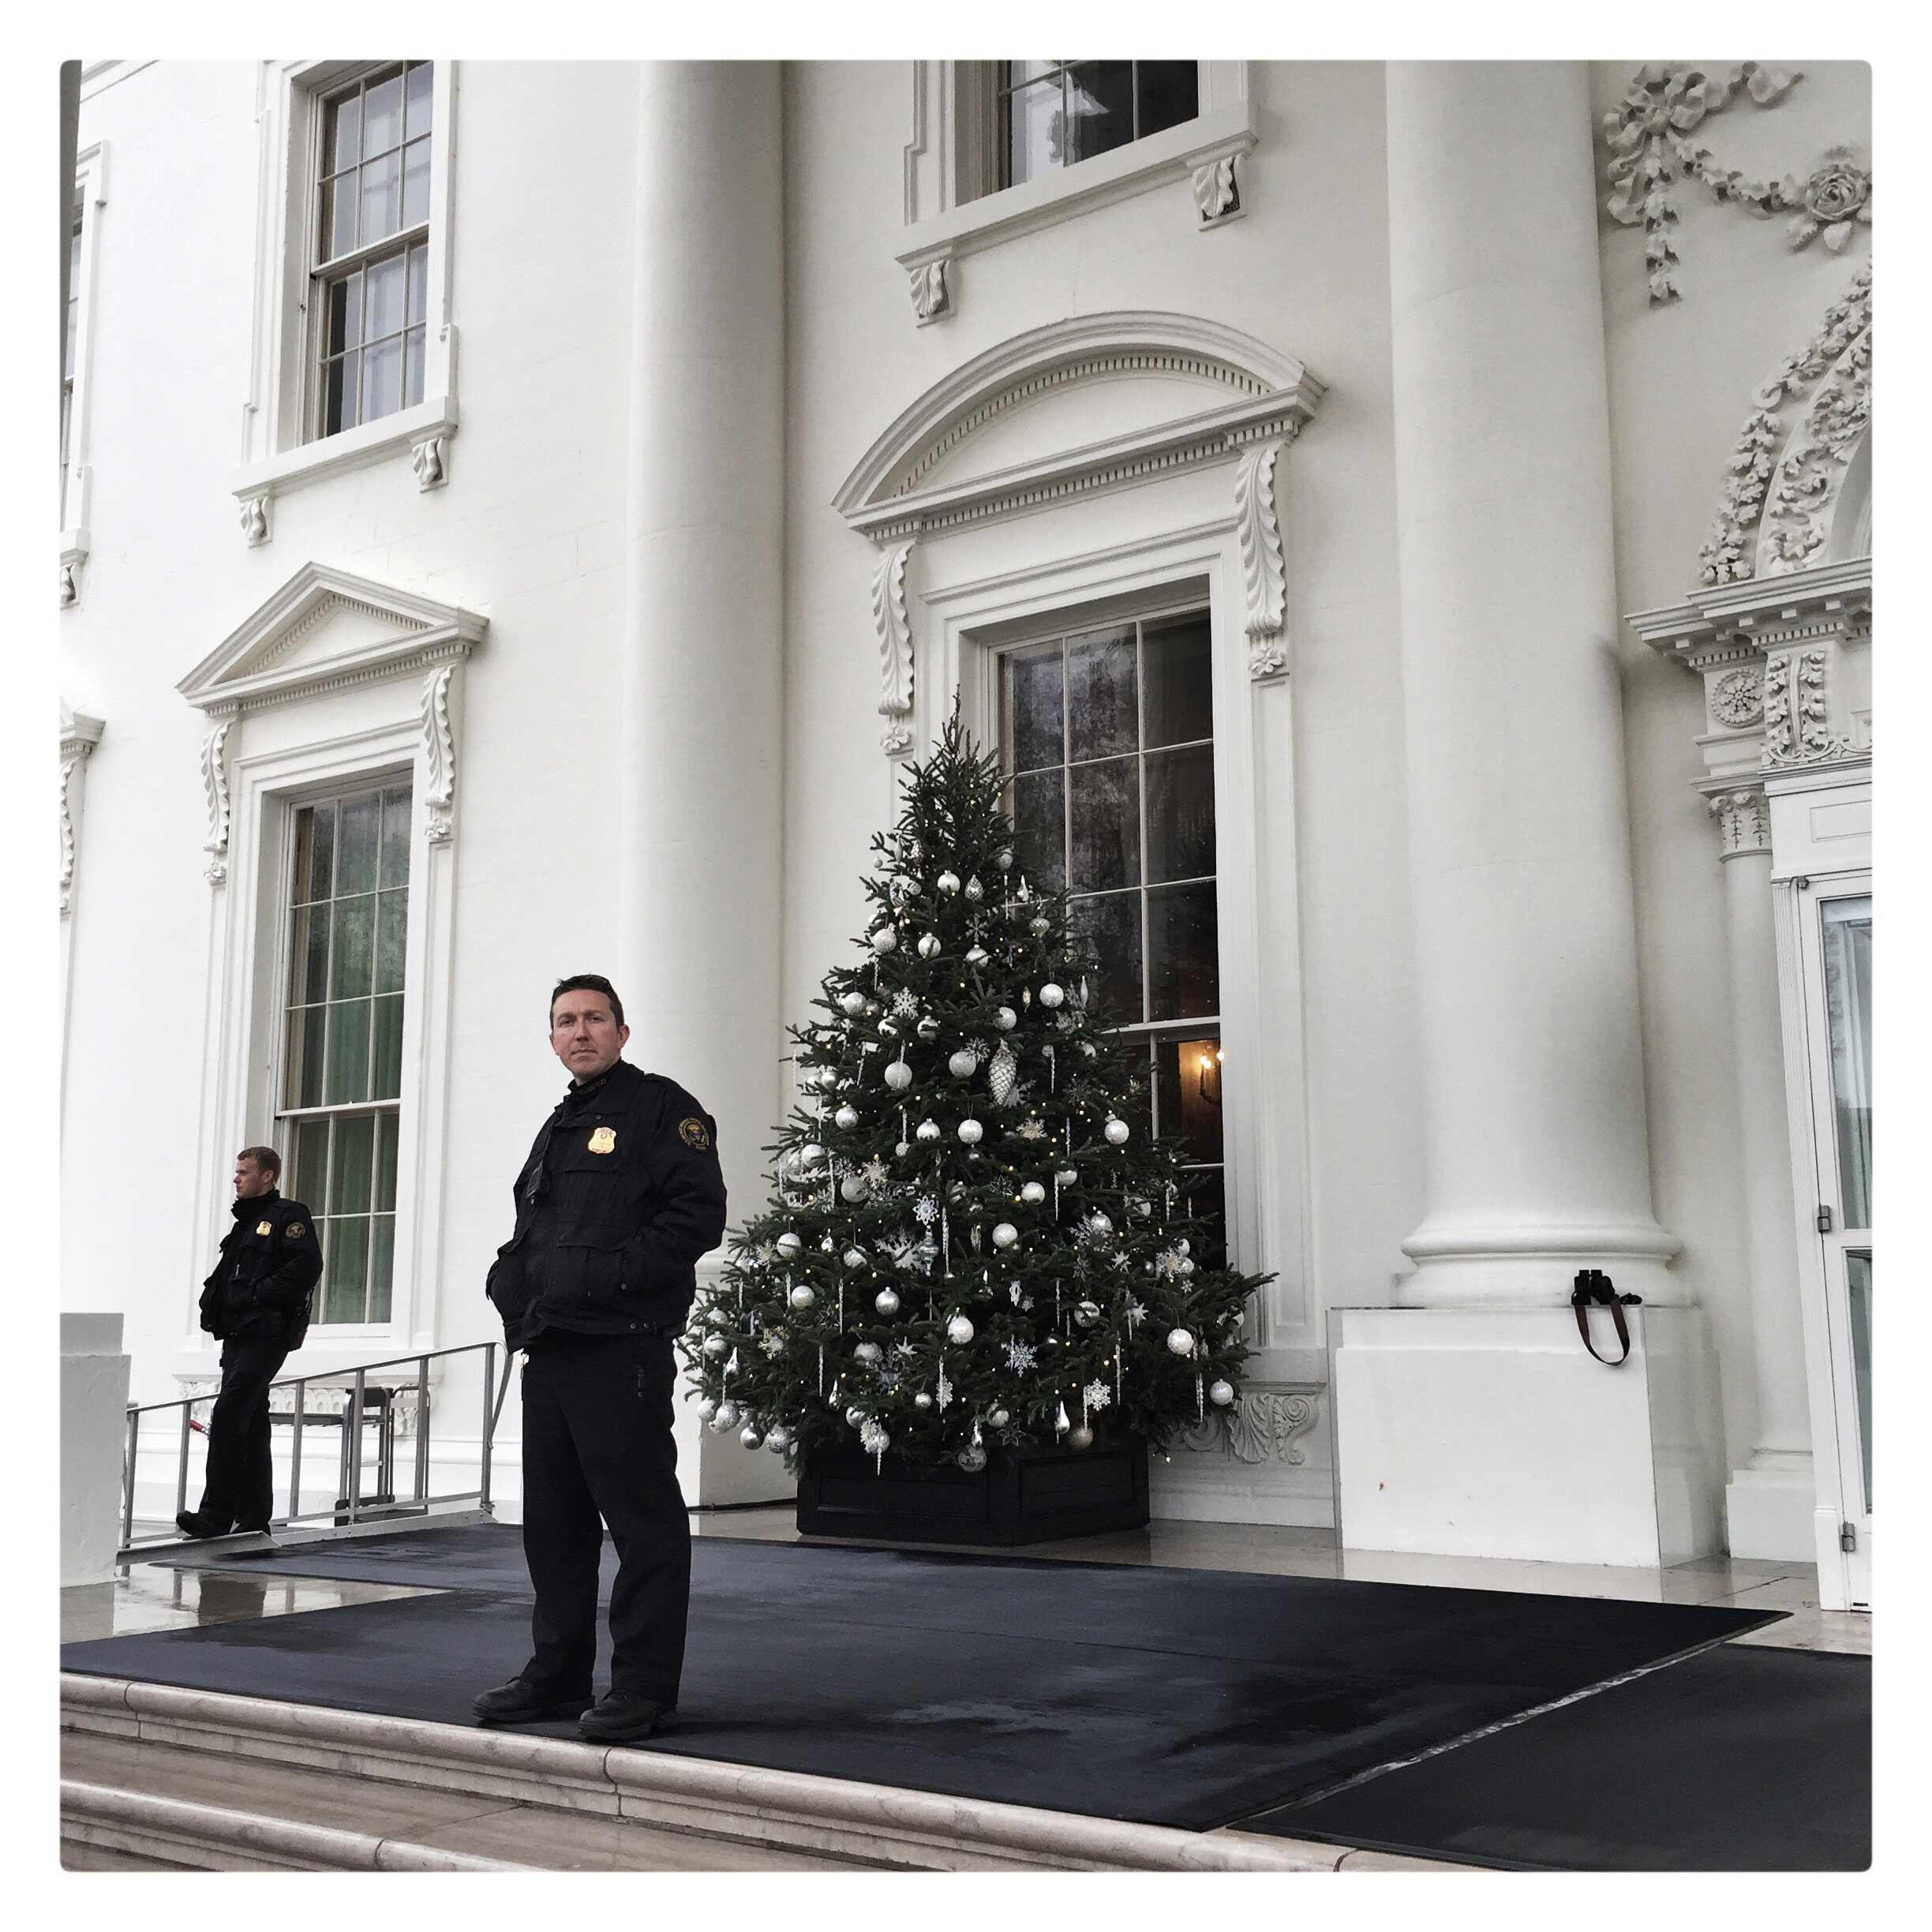 Secret Service agents stand in front of a Christmas tree at the North Portico of the White House.